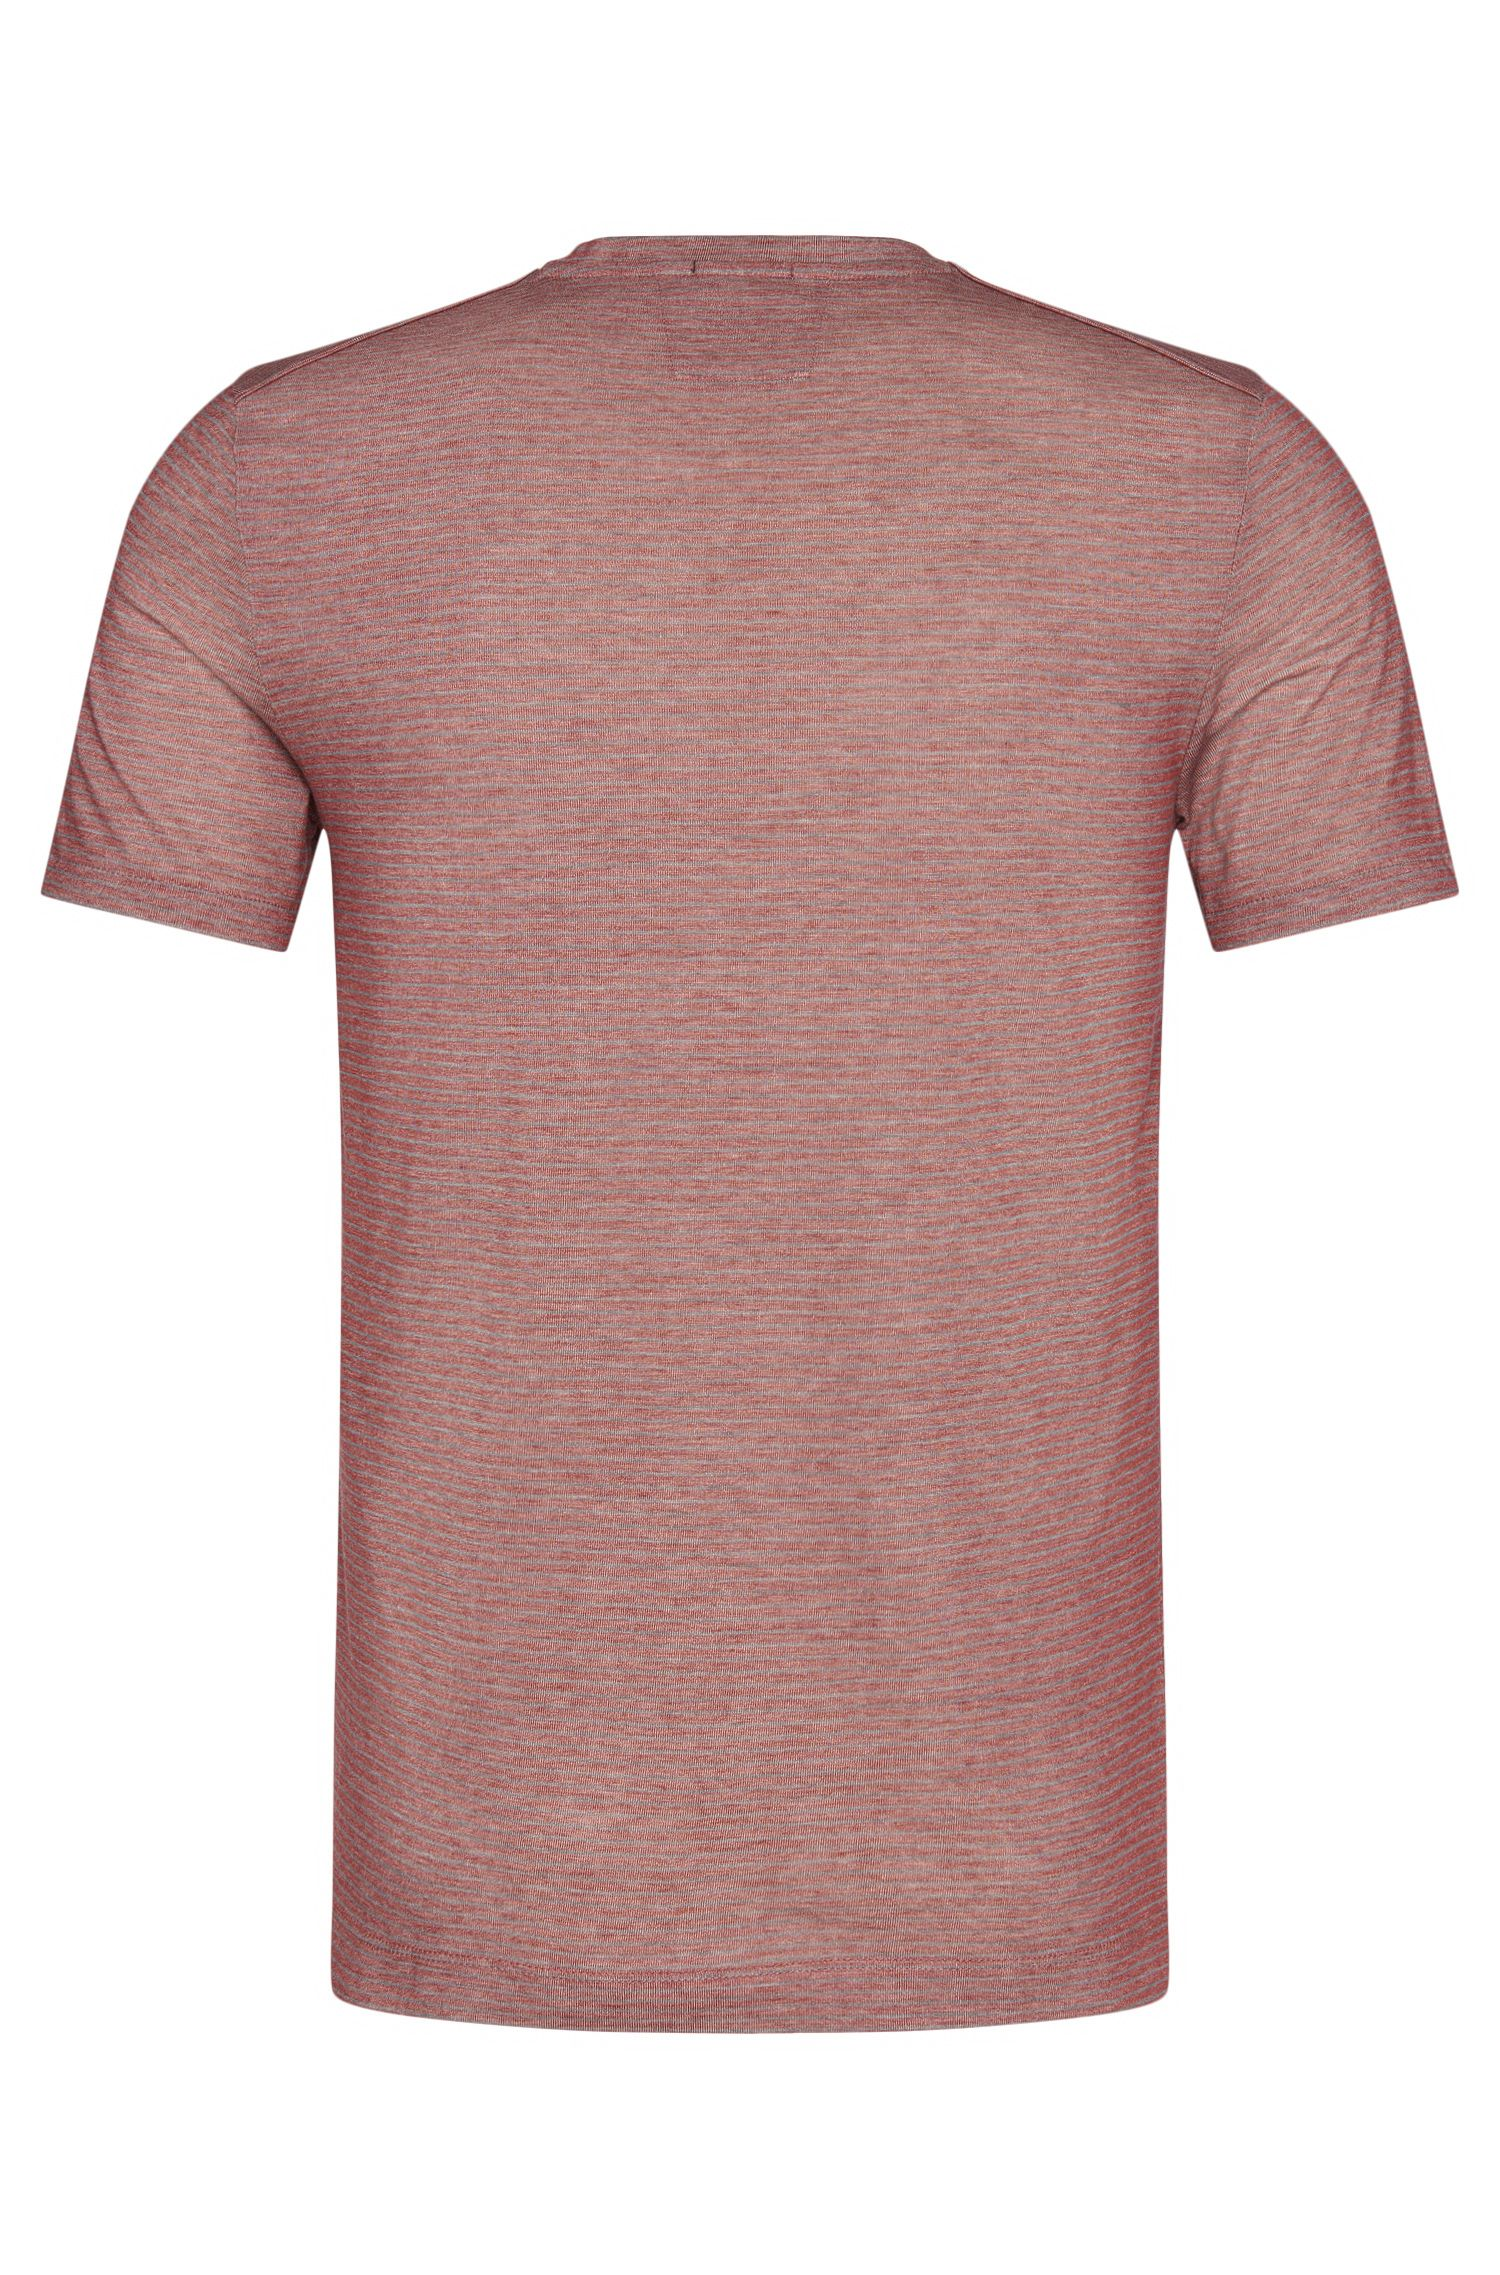 Gestreiftes Slim-Fit Tailored T-Shirt aus Baumwolle: 'T-Tribel 17'